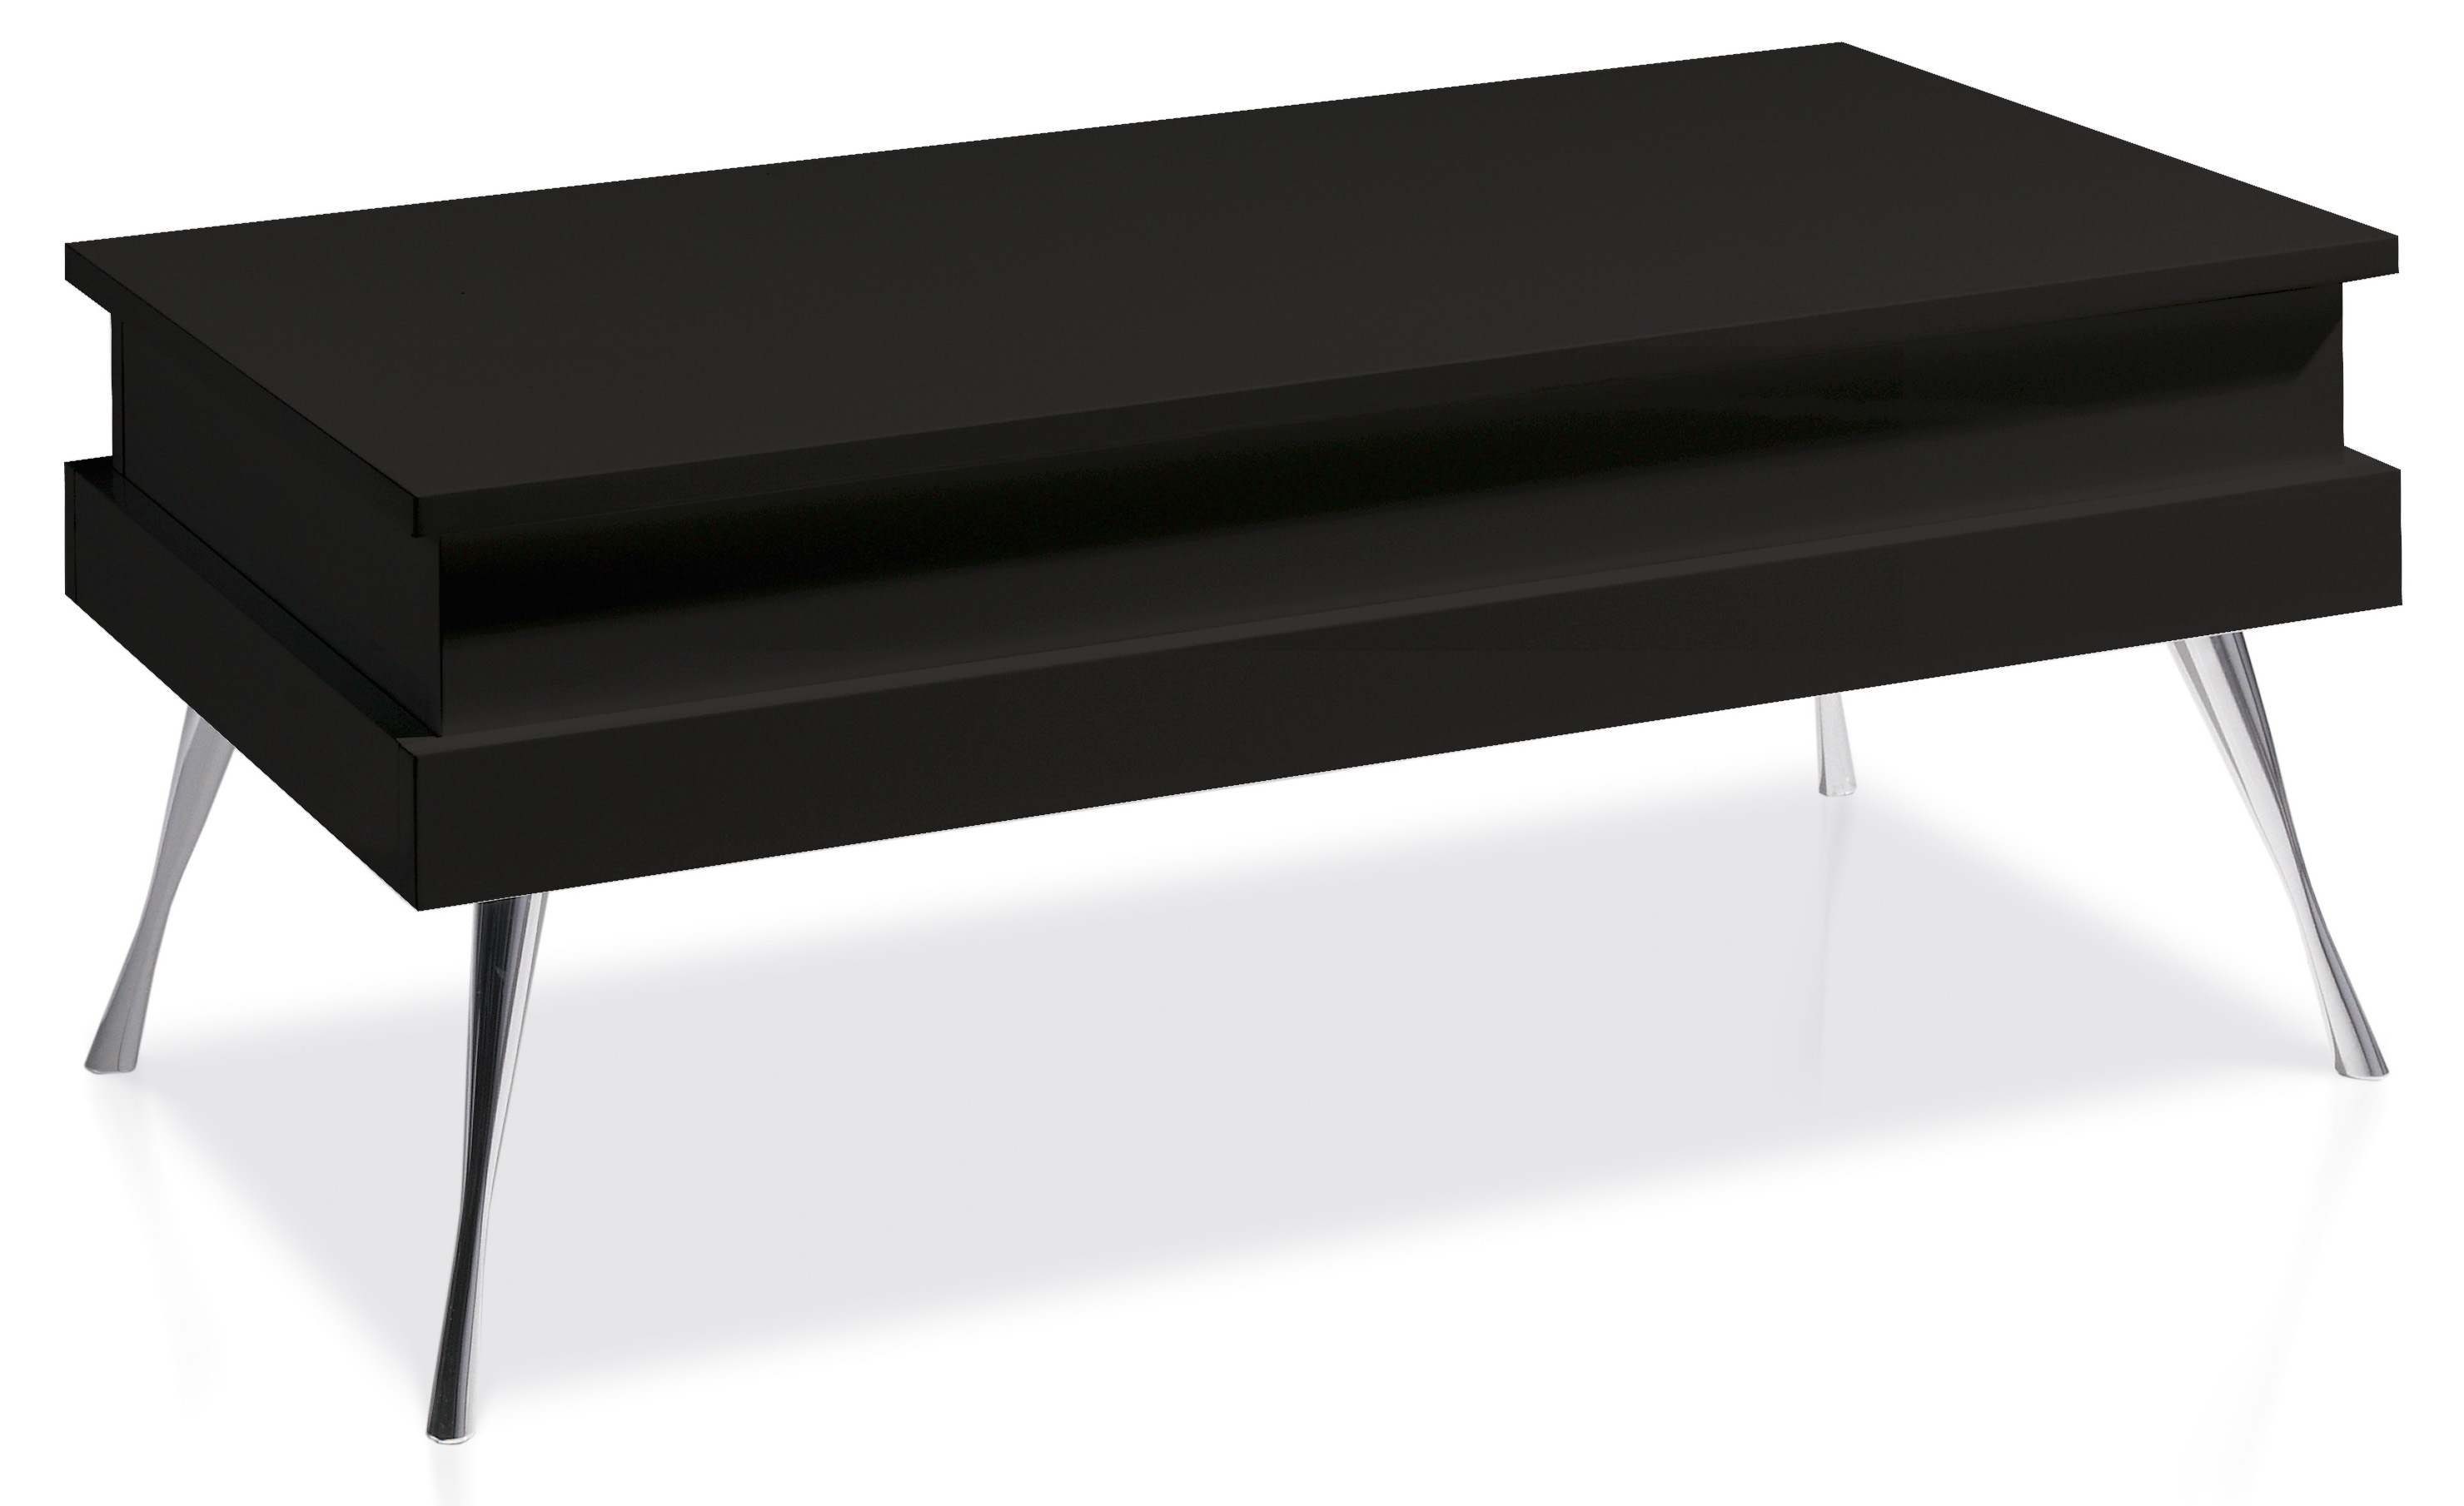 table basse relevable laqu e noir pied acier chrom simpla. Black Bedroom Furniture Sets. Home Design Ideas